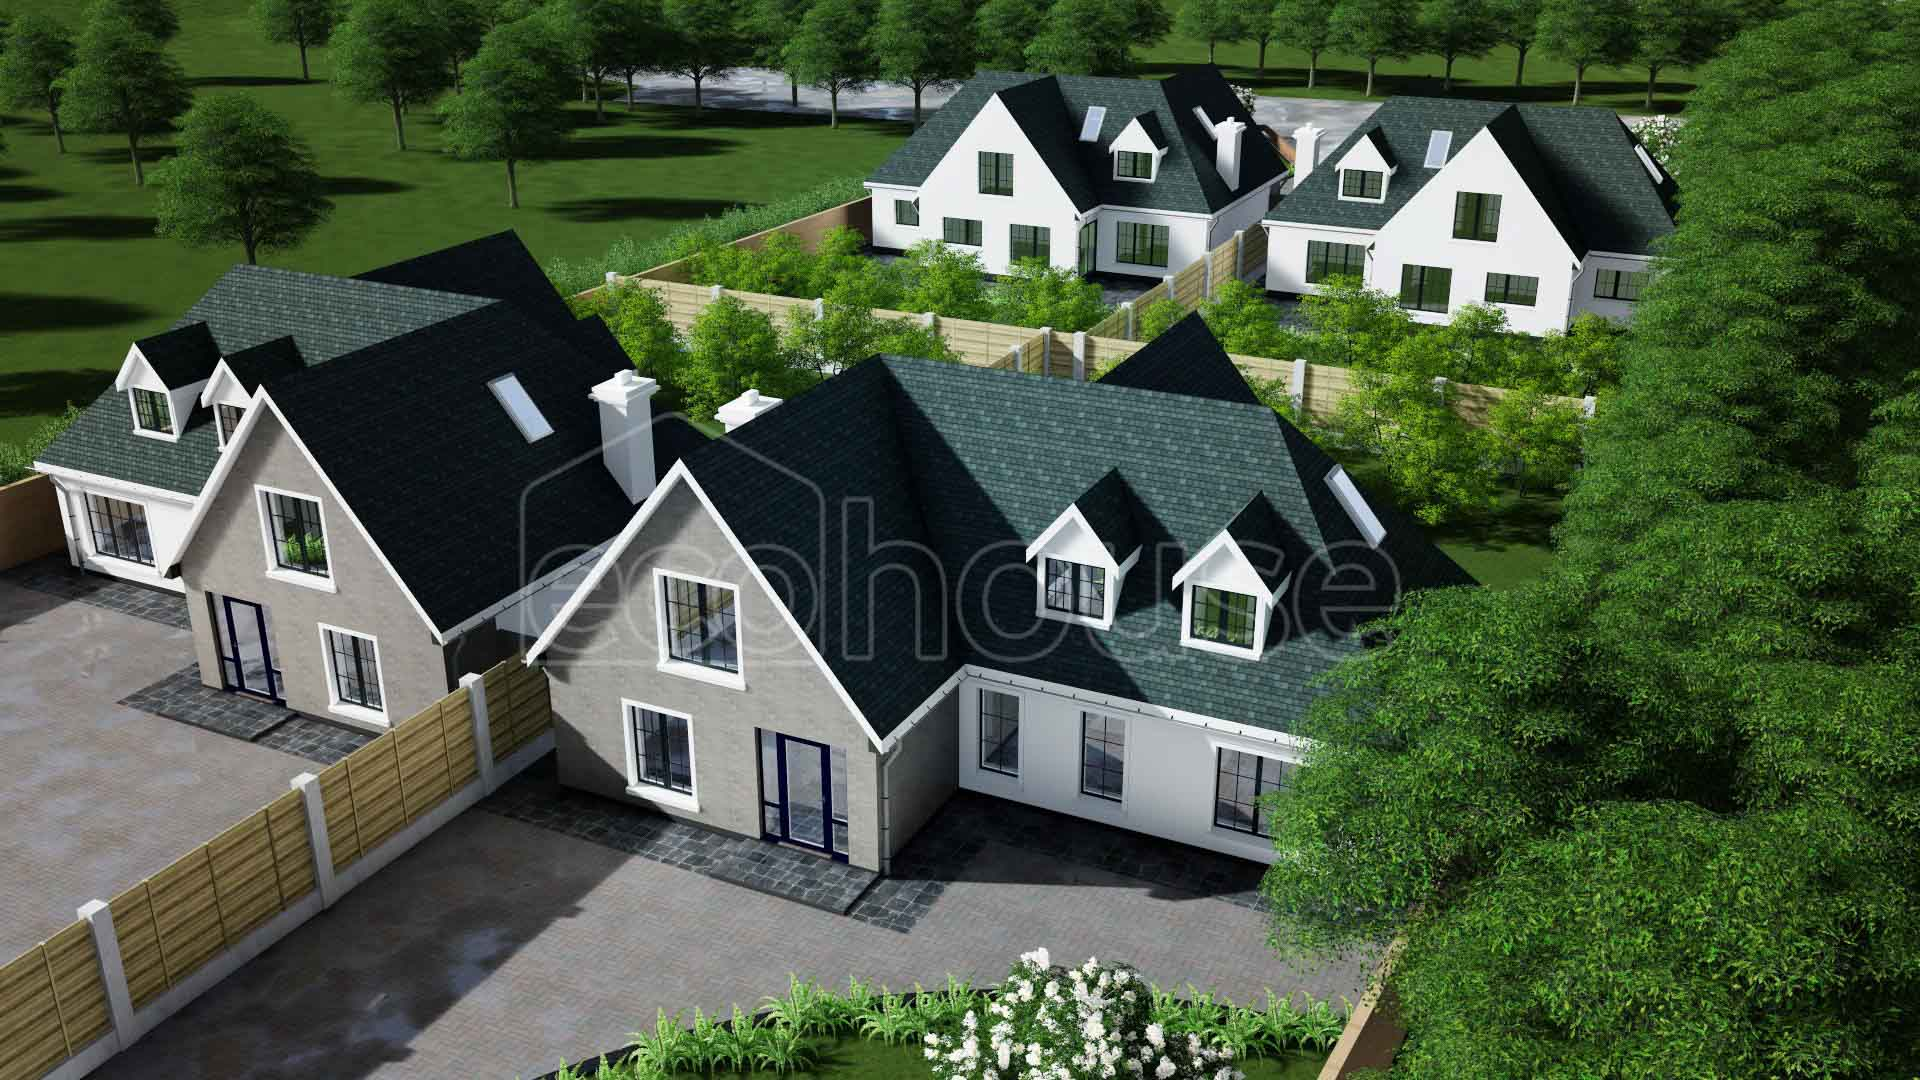 Ecohouse Ratoath Project